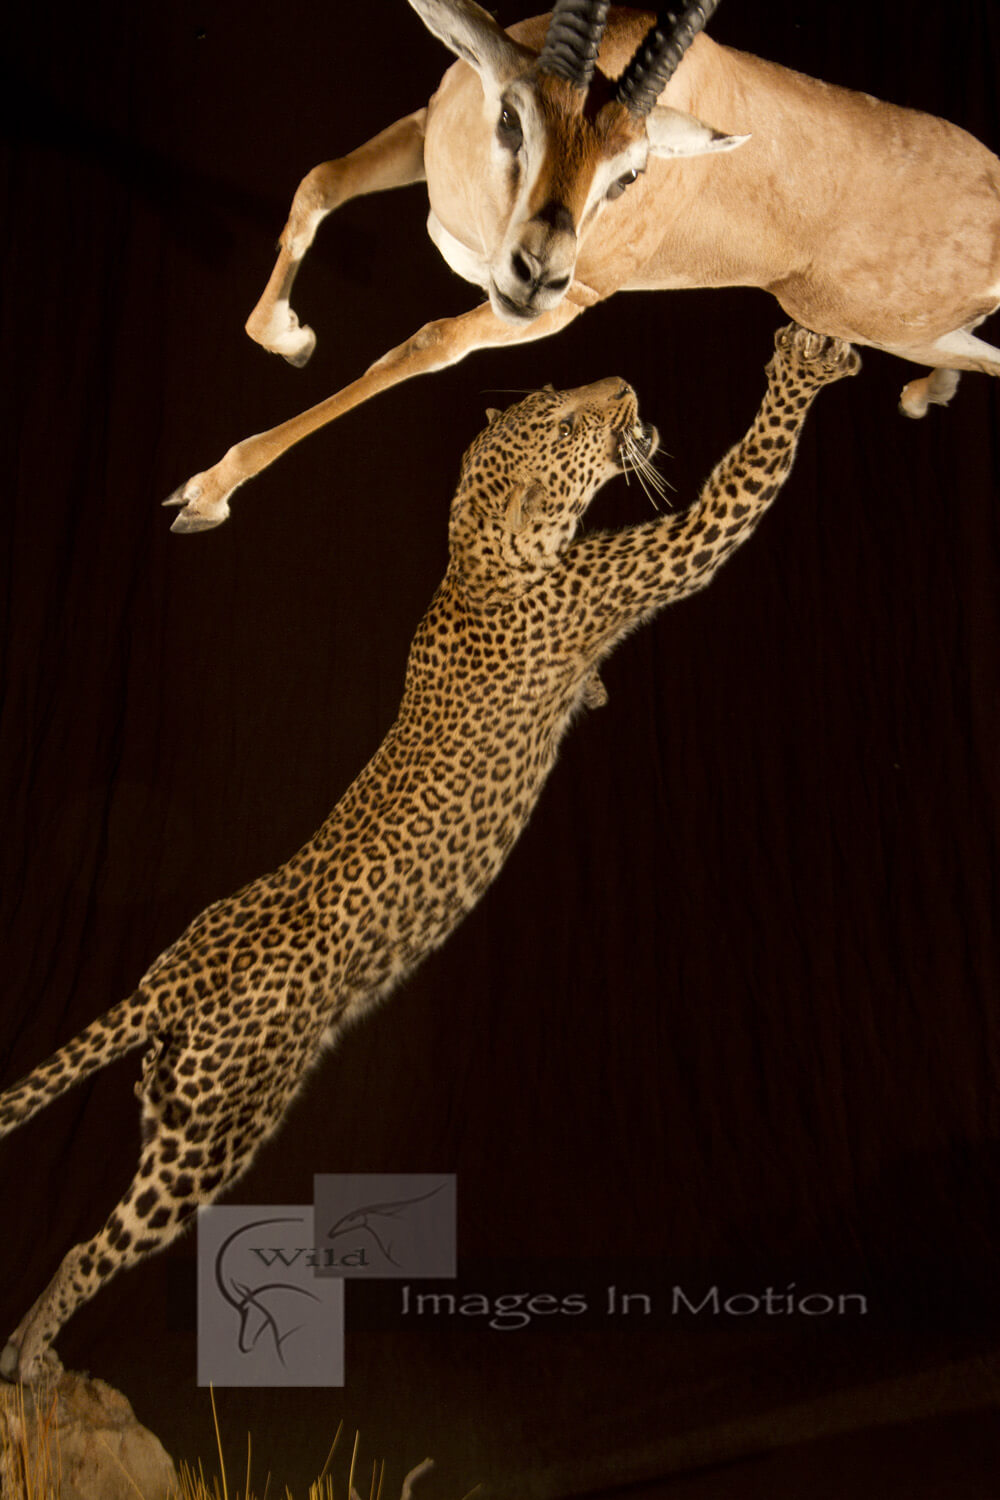 Leopard Attacking Gazelle